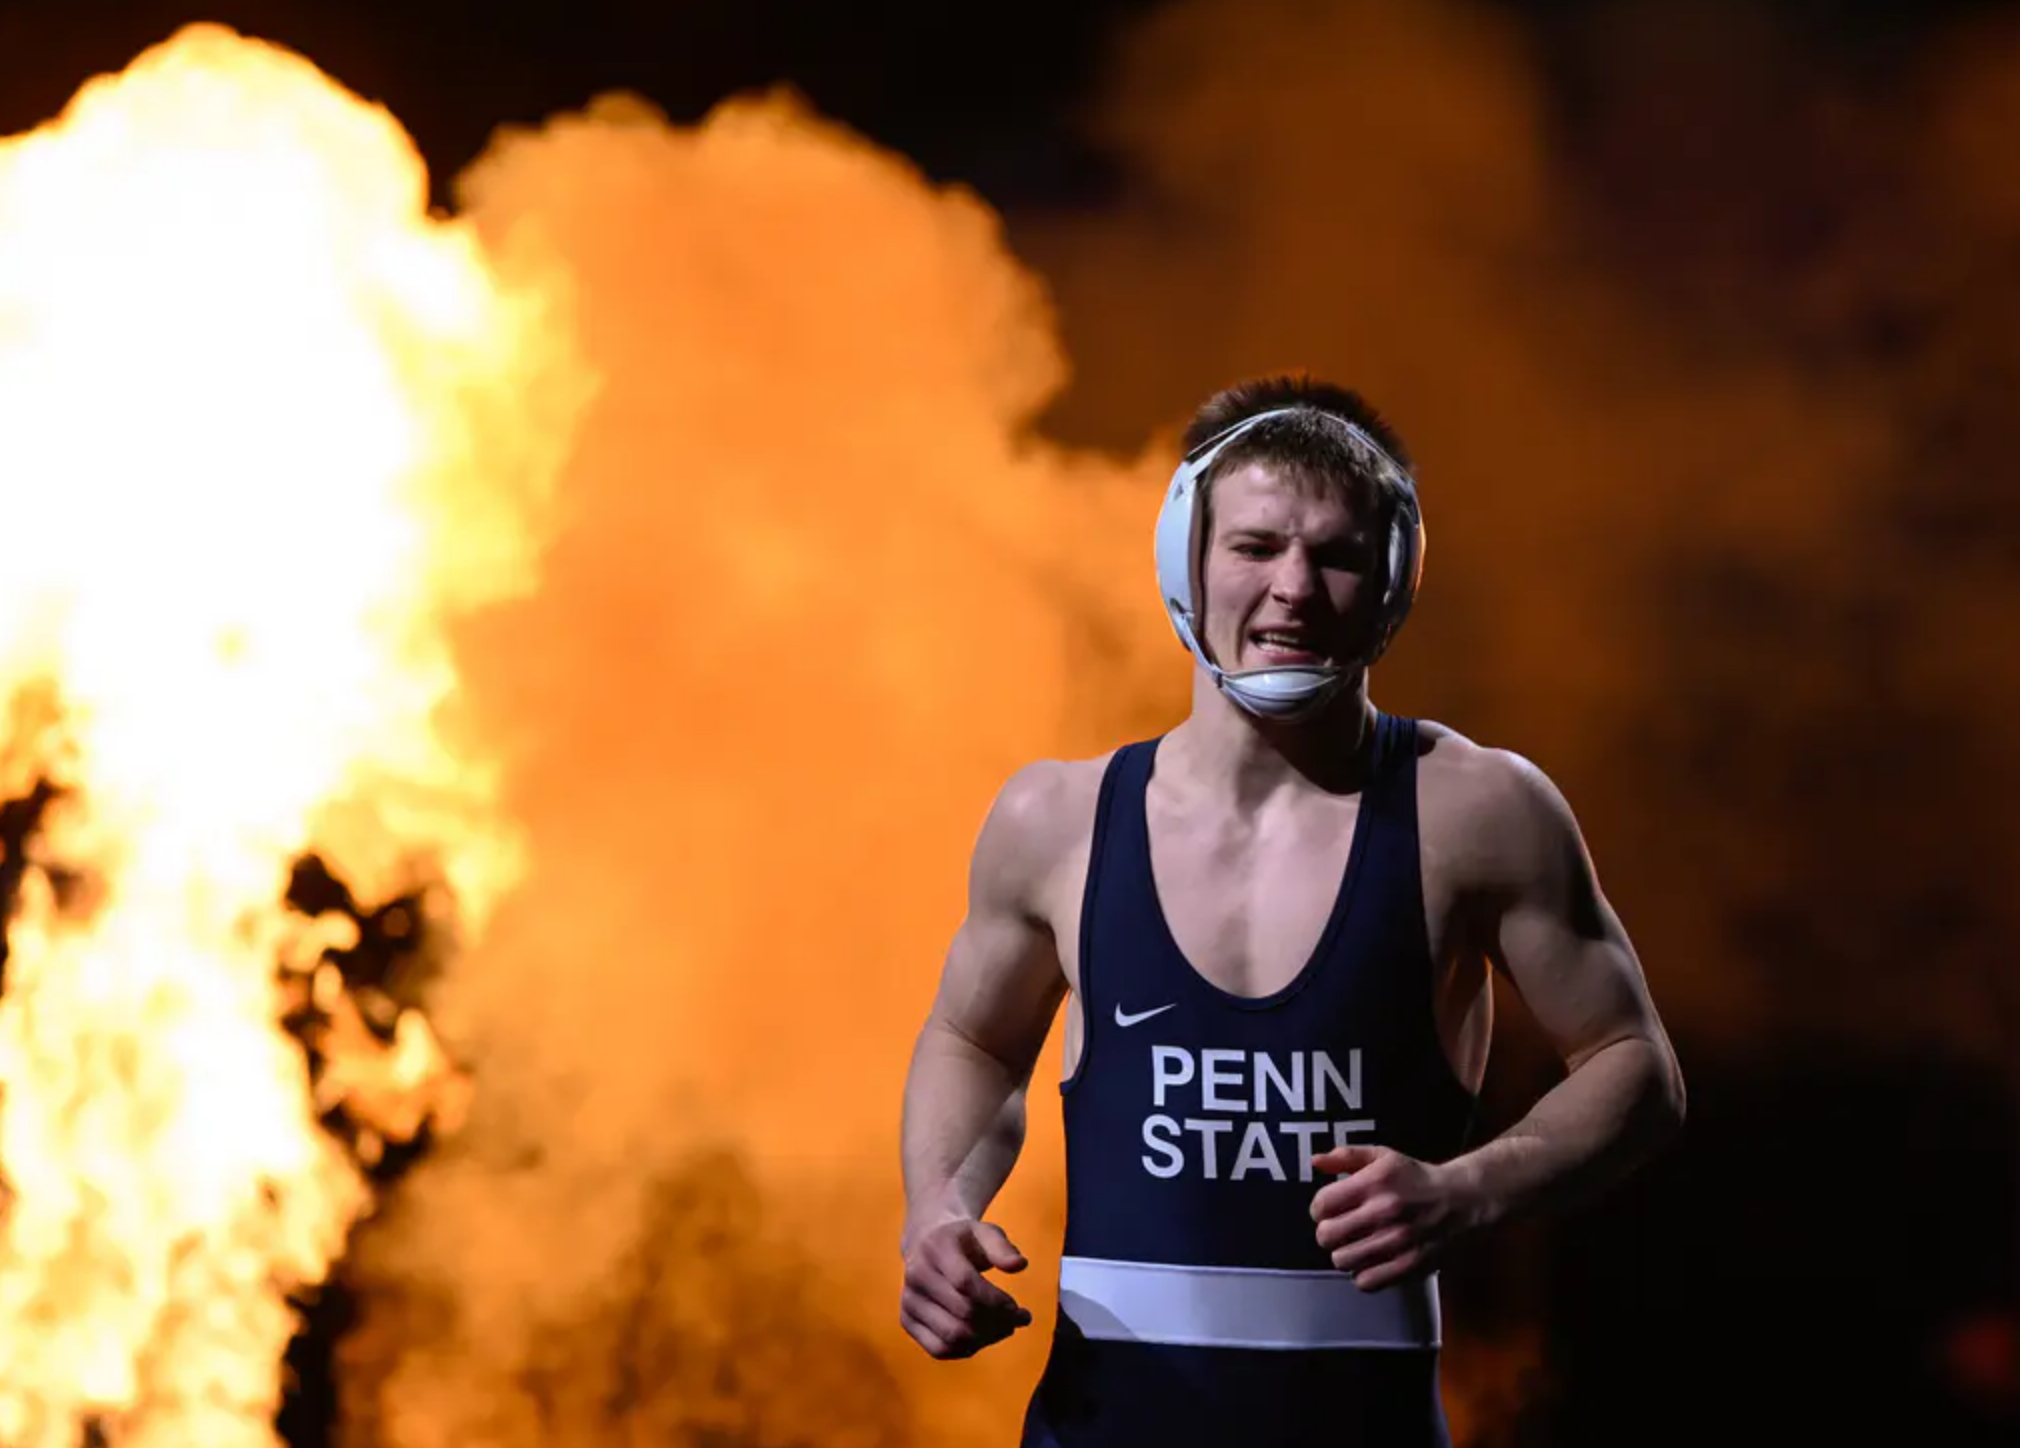 SI.com: Jason Nolf wins Rumble on the Rooftop